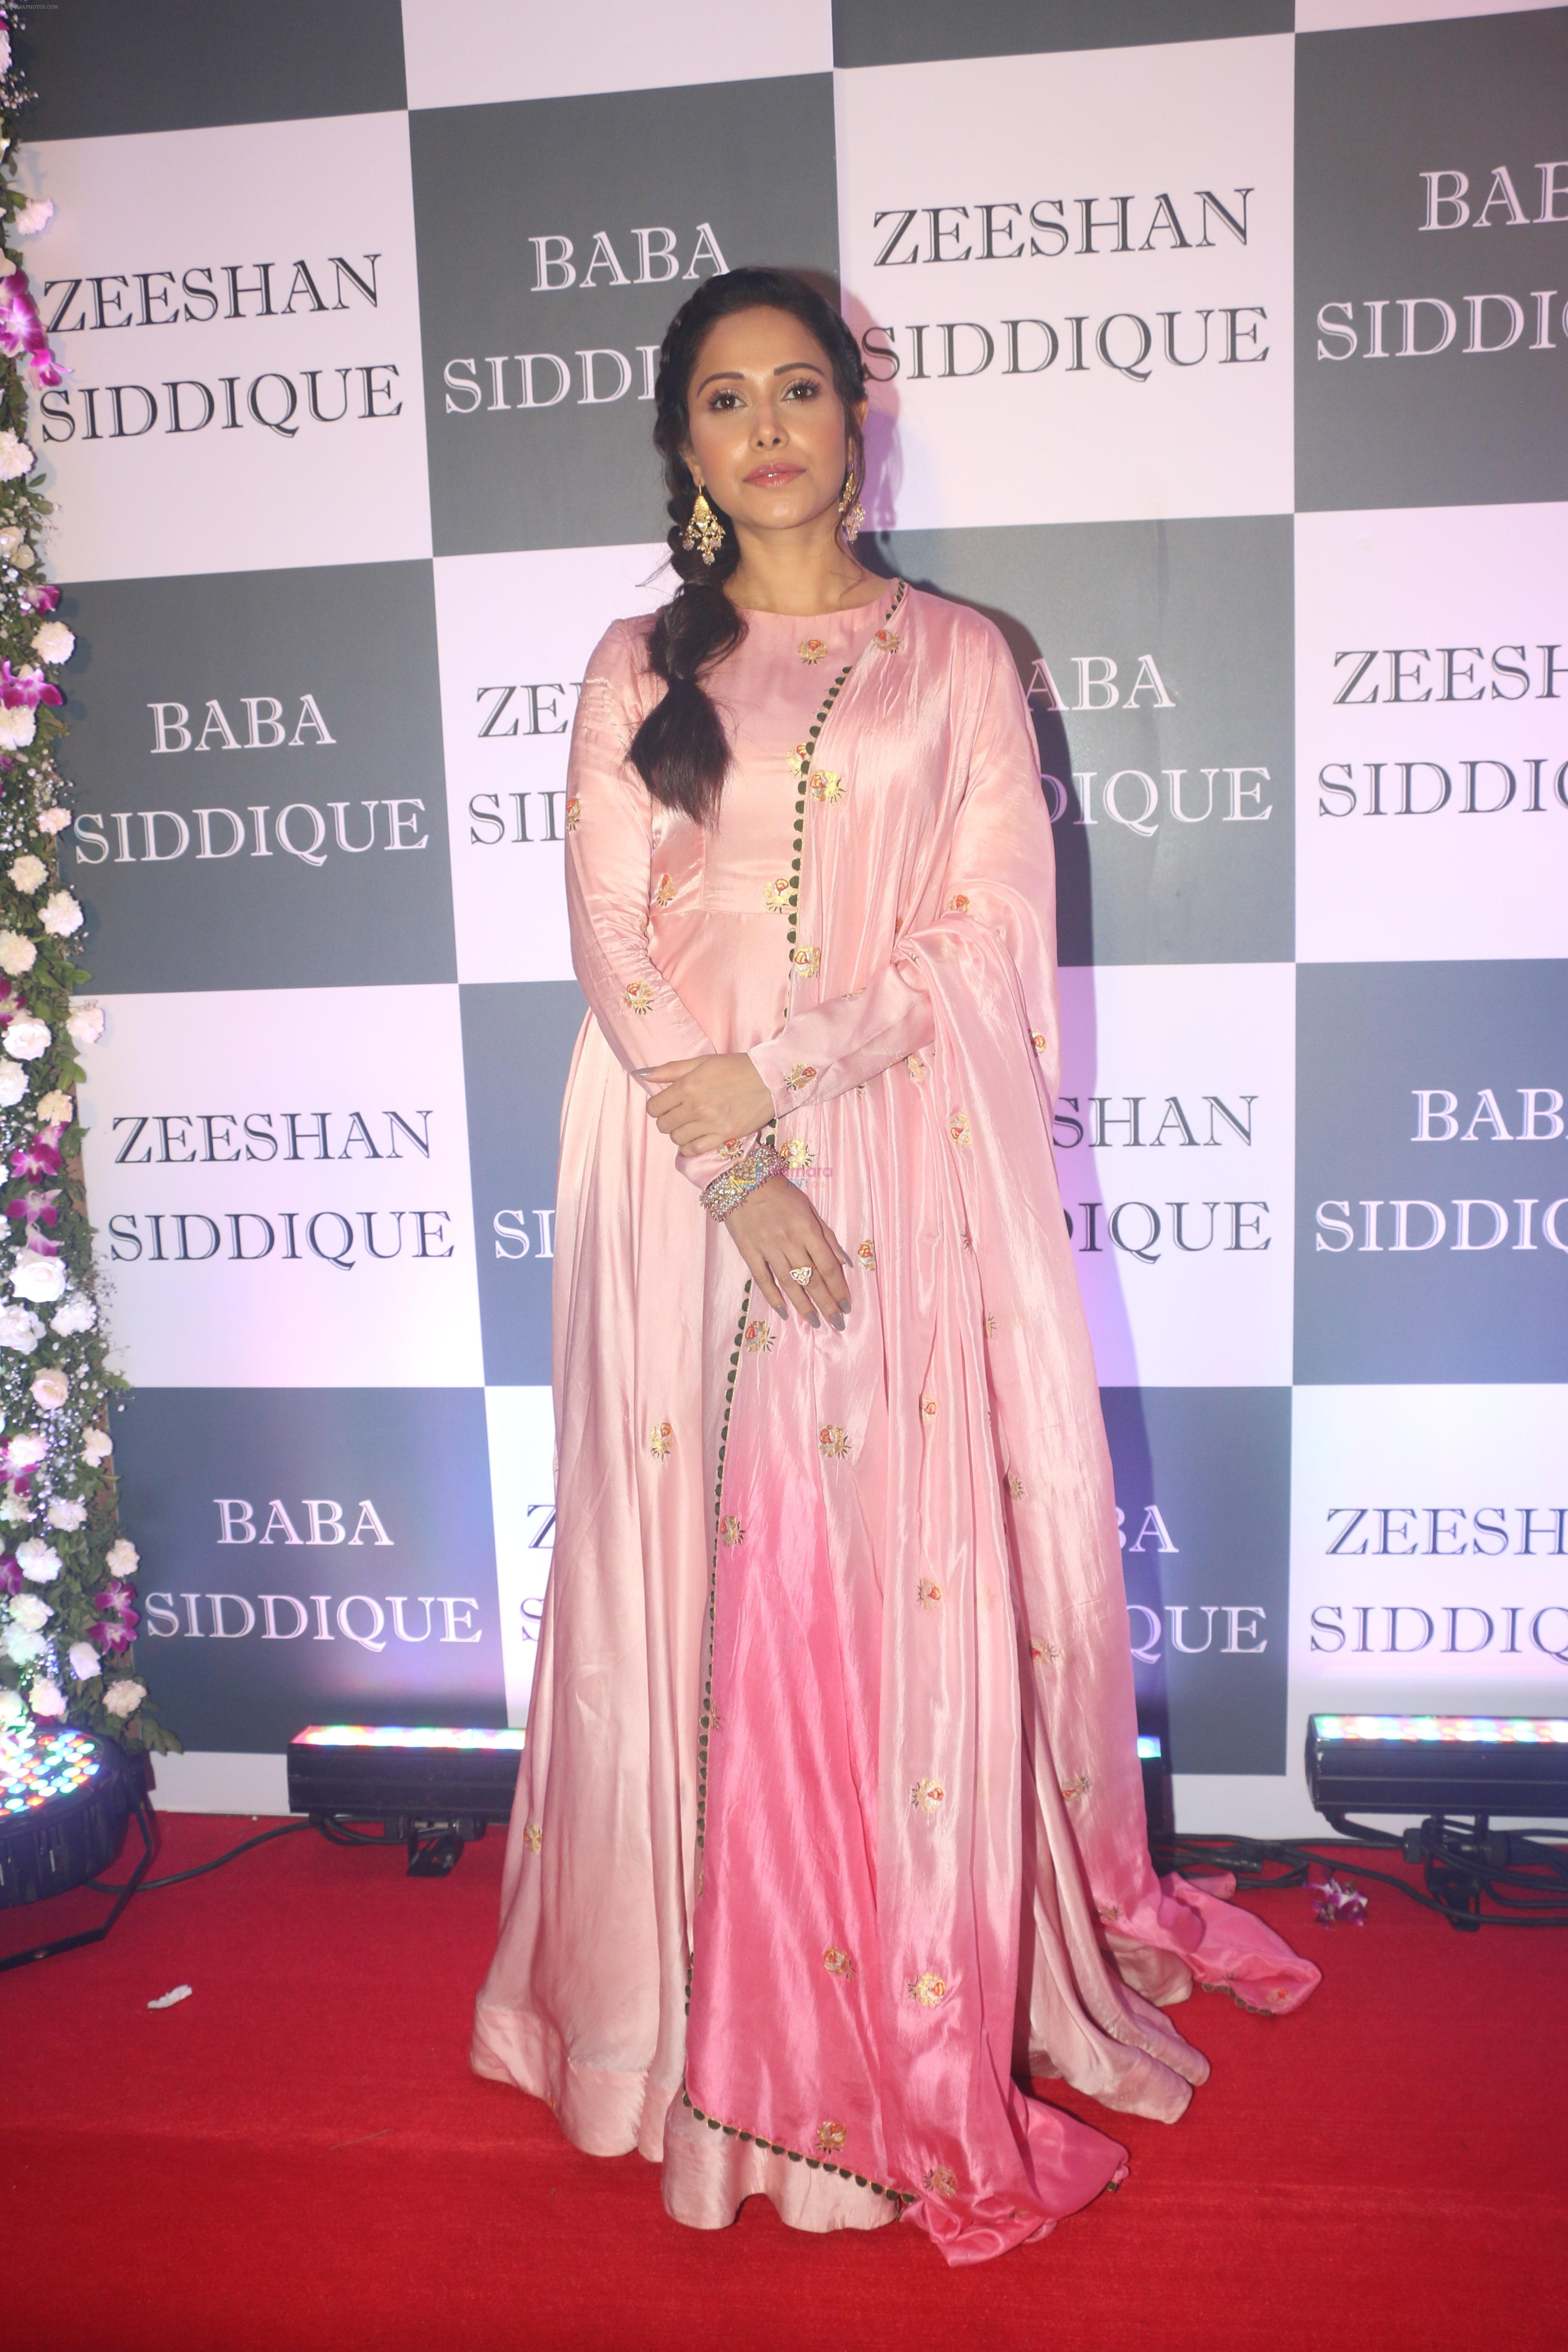 Nushrat Barucha at Baba Siddiqui iftaar party in Taj Lands End bandra on 2nd June 2019